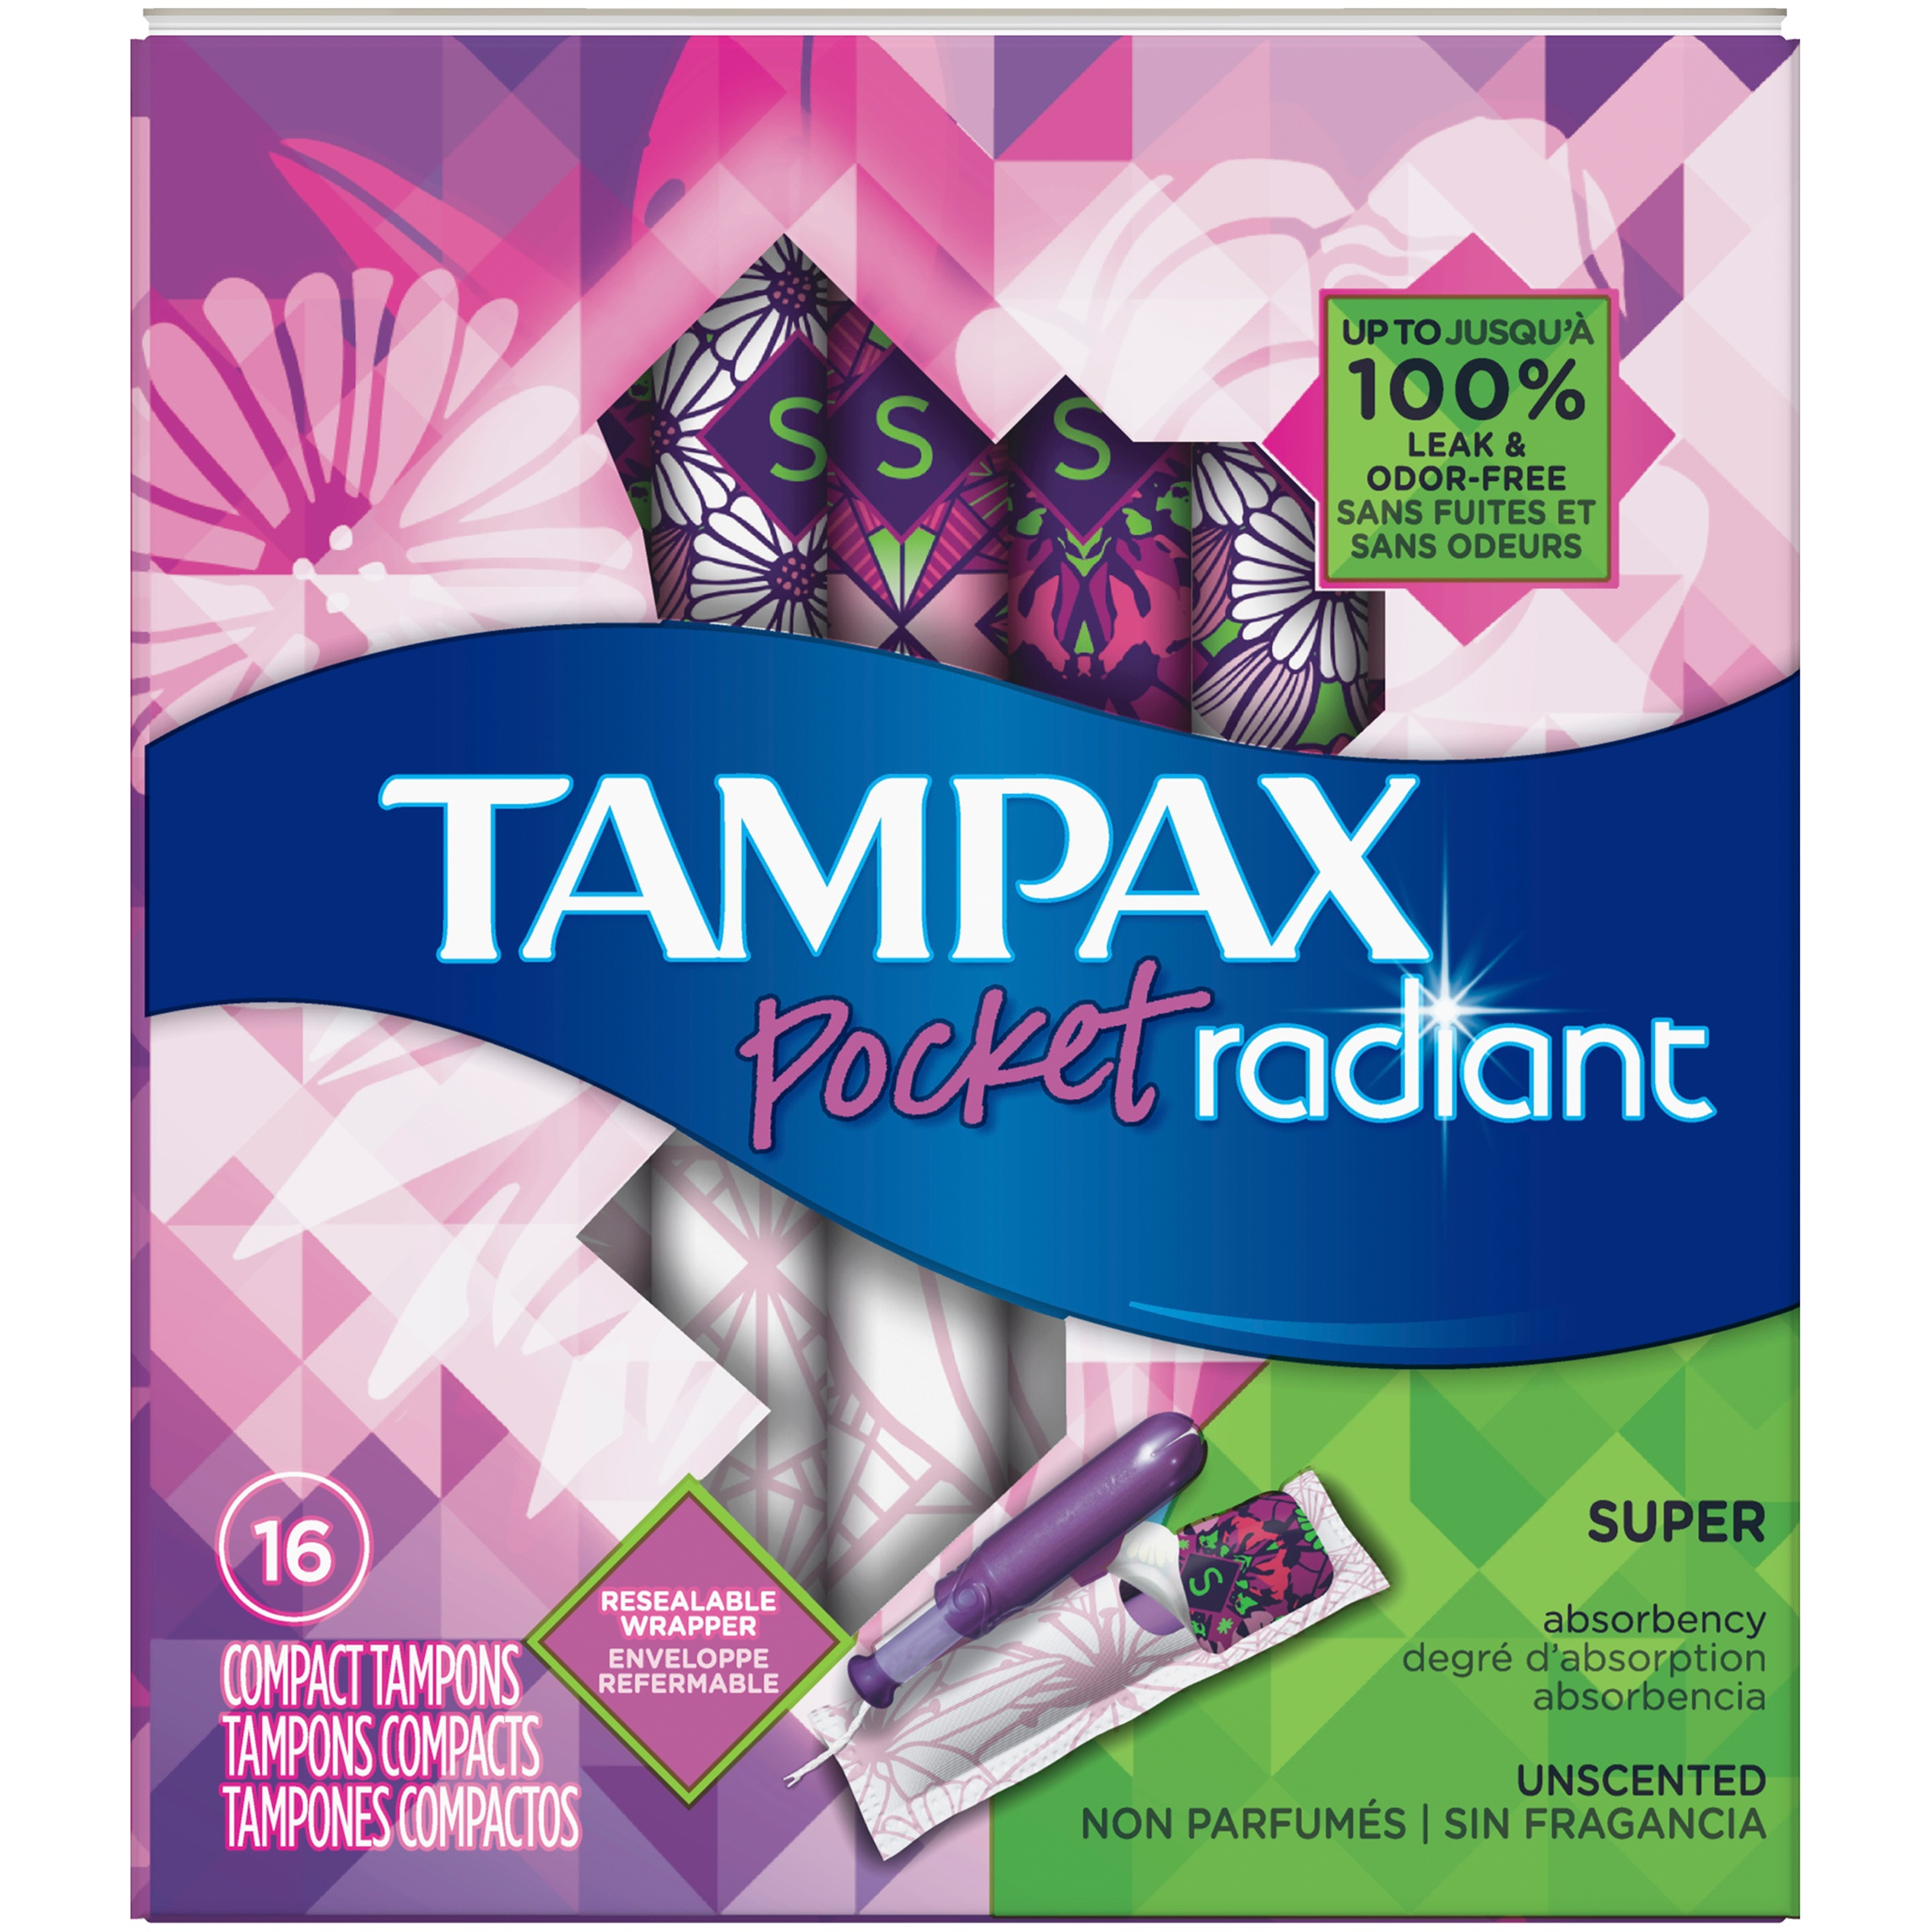 Tampax Pocket Radiant Super Unscented Compact Tampons 16 ct